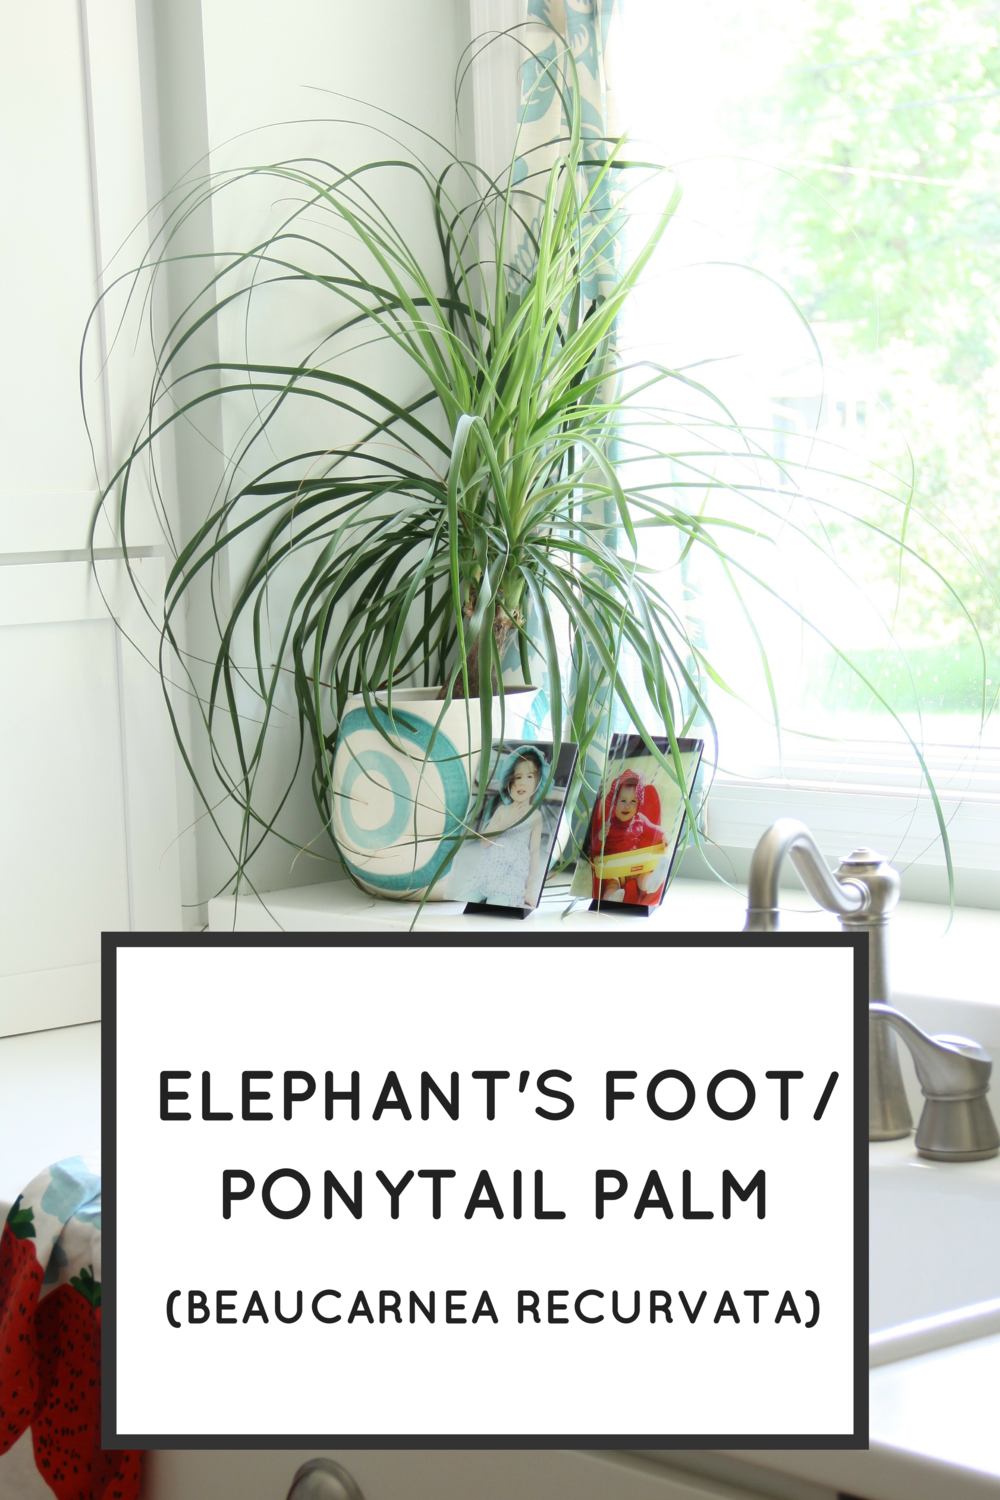 Easy Houseplants: Elephant's Foot/Ponytail Palm